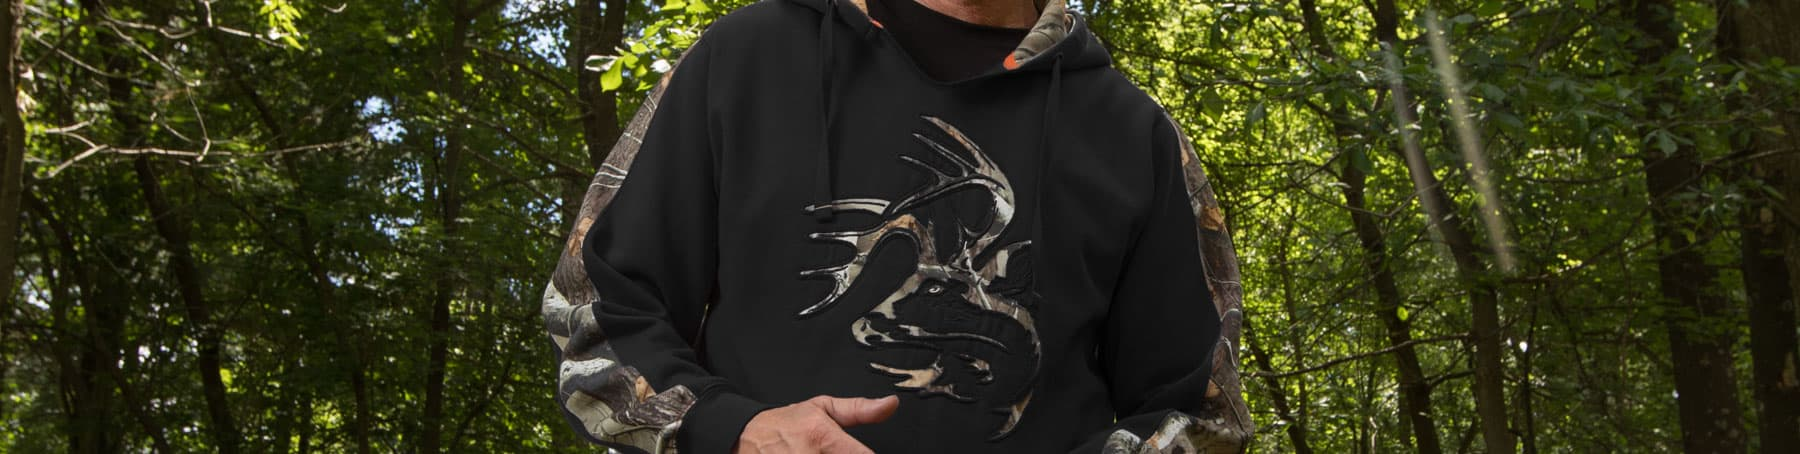 Outfitter Hoodies